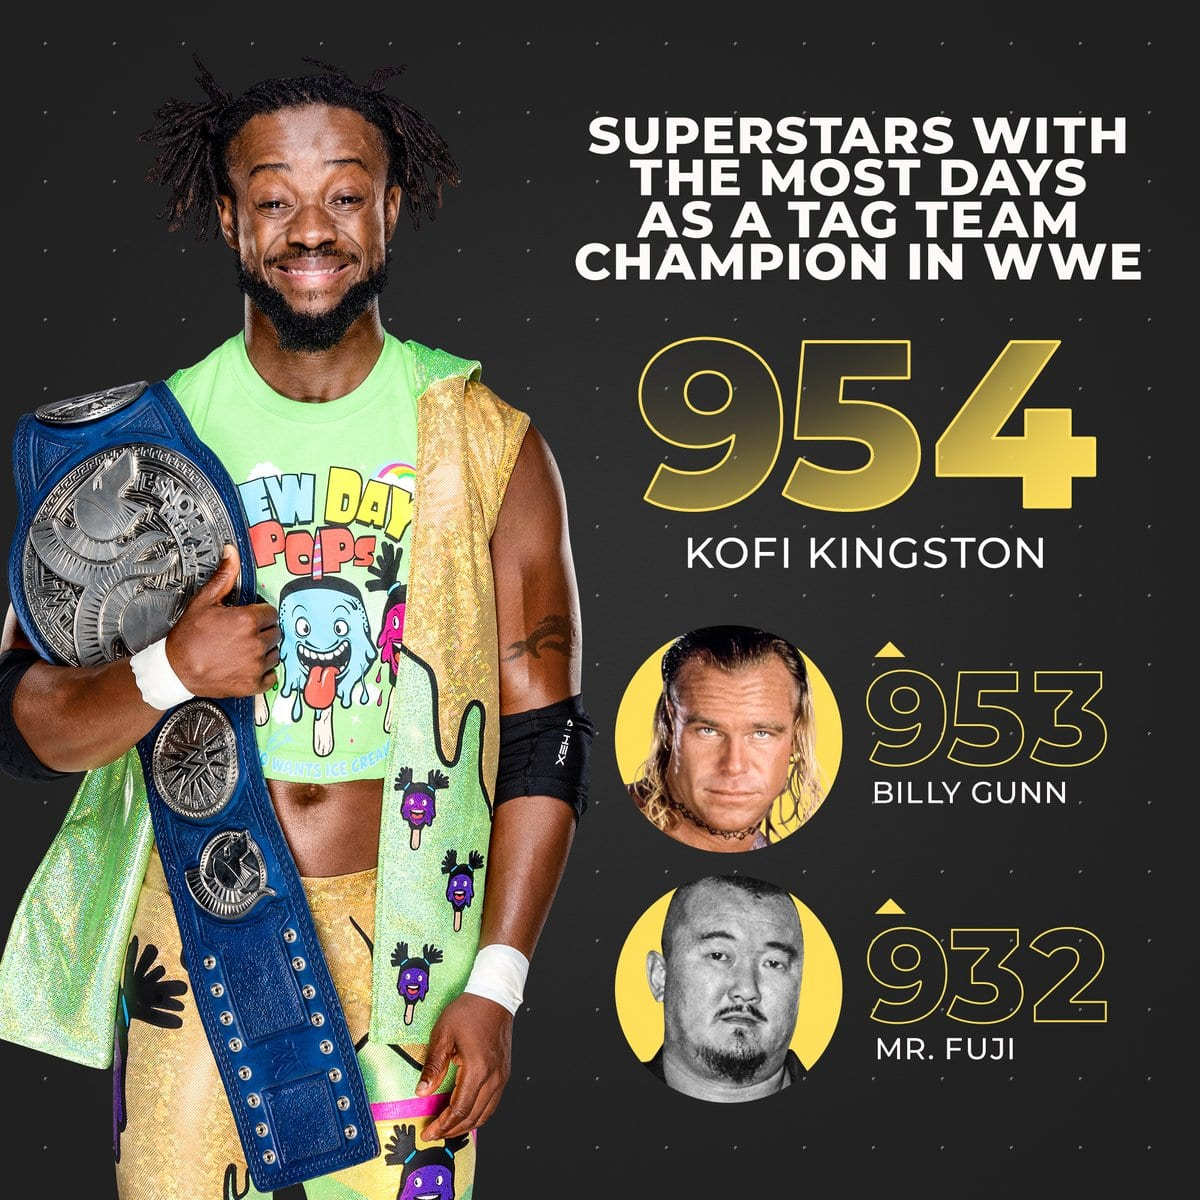 Kofi Kingston Becomes The Superstar With The Most Days As A Tag Team Champion In WWE